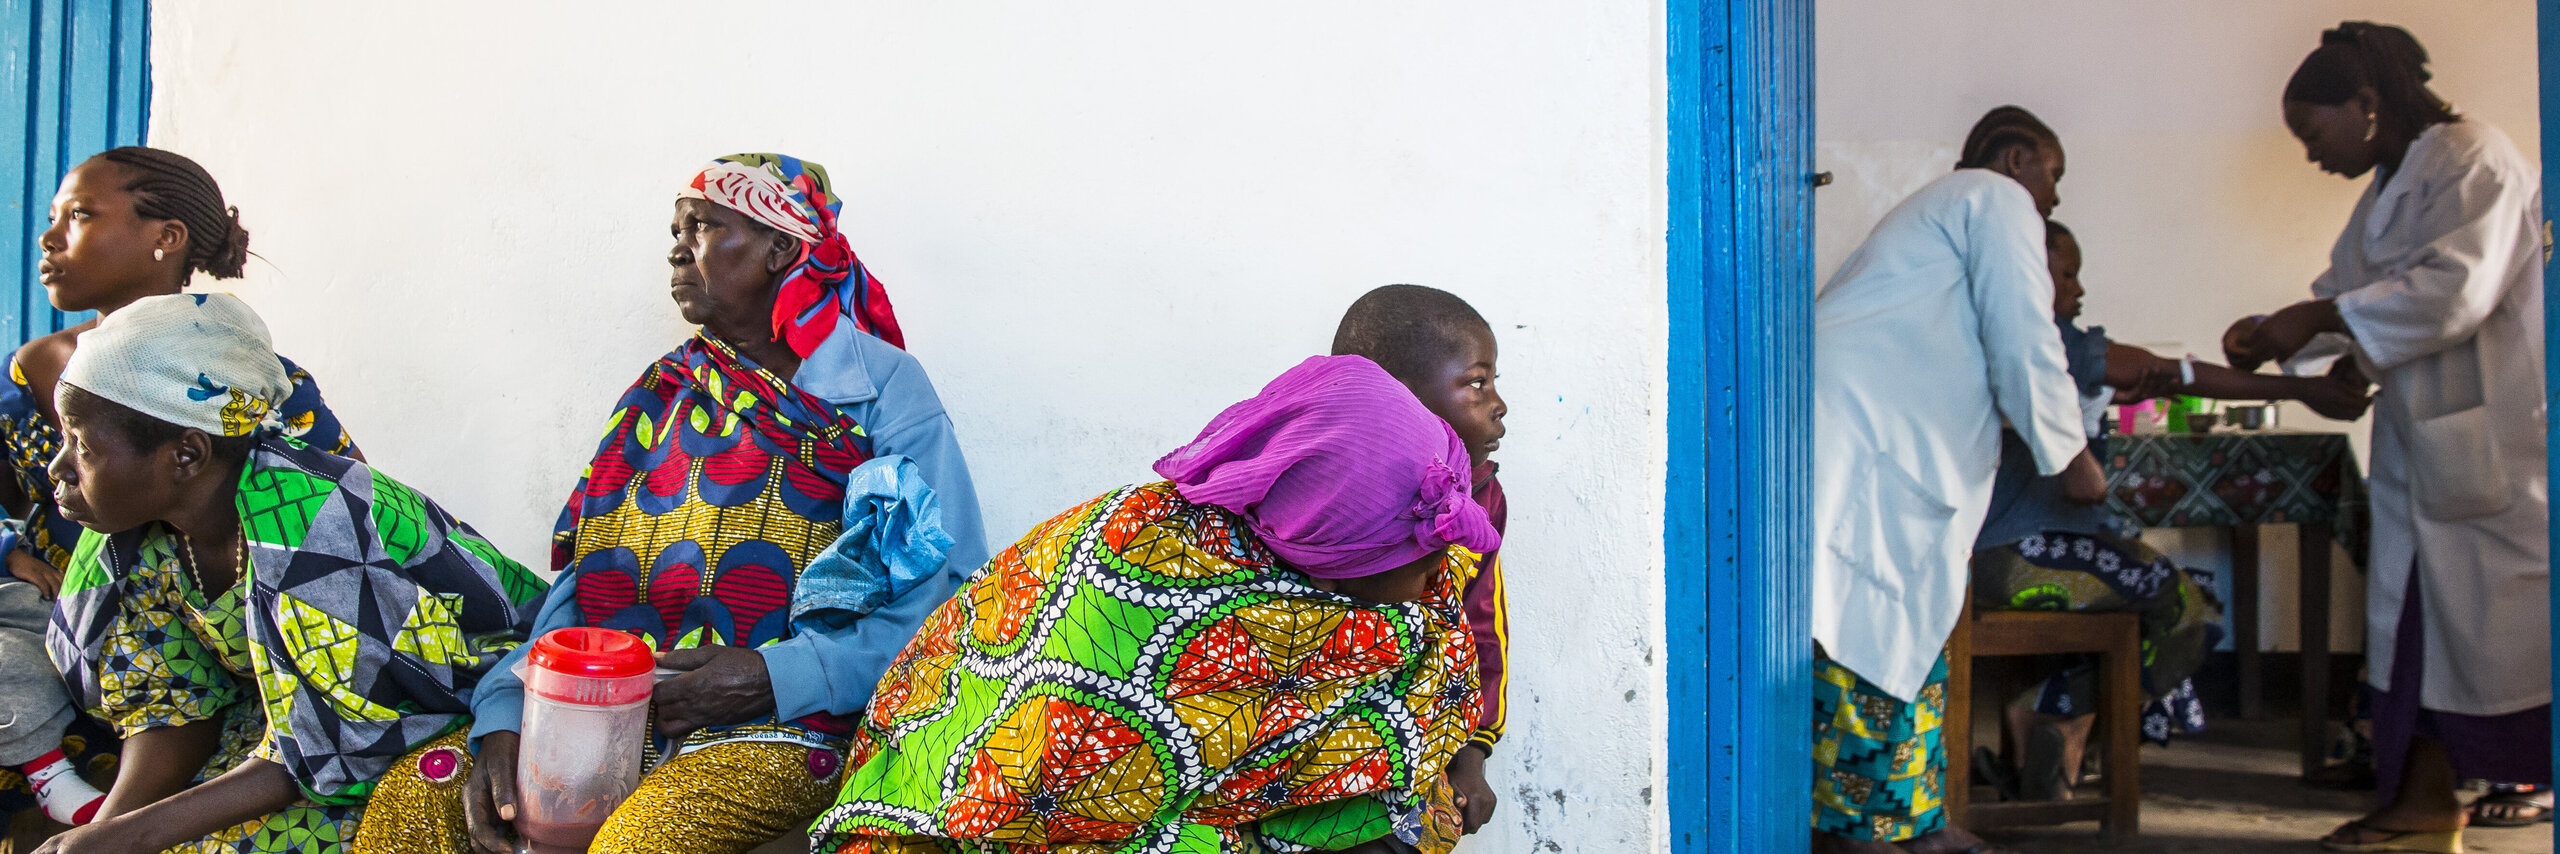 Women waiting in front of a doctor's office